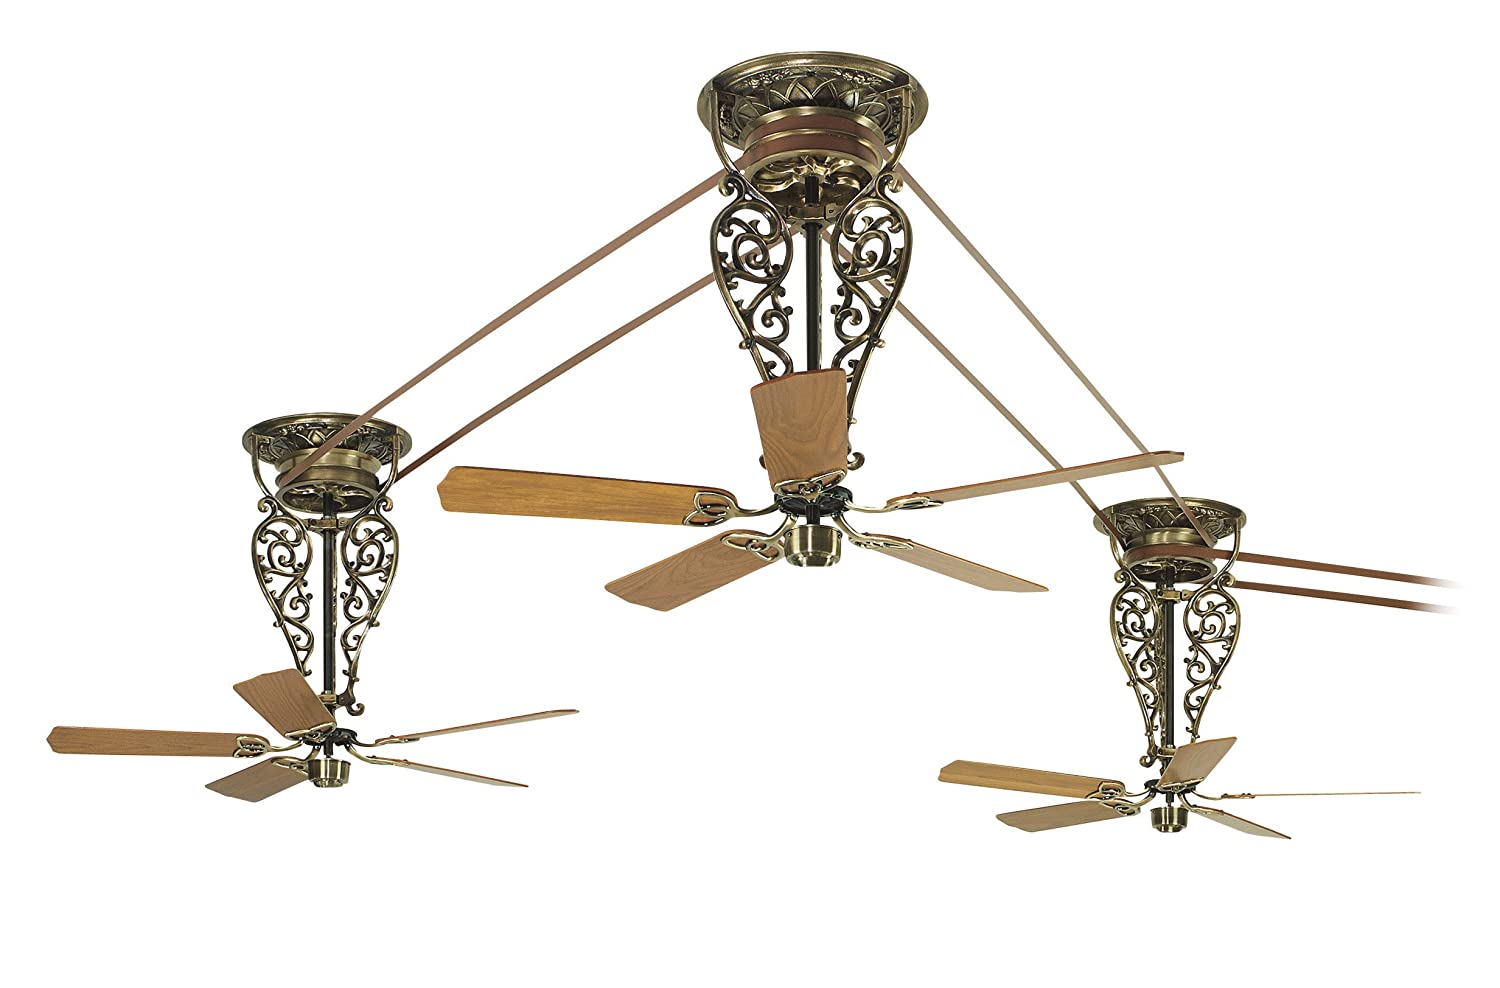 Fanimation FP510AB Bourbon Street Short, Antique Brass, Motor Only   Pulley  Ceiling Fans   Amazon.com